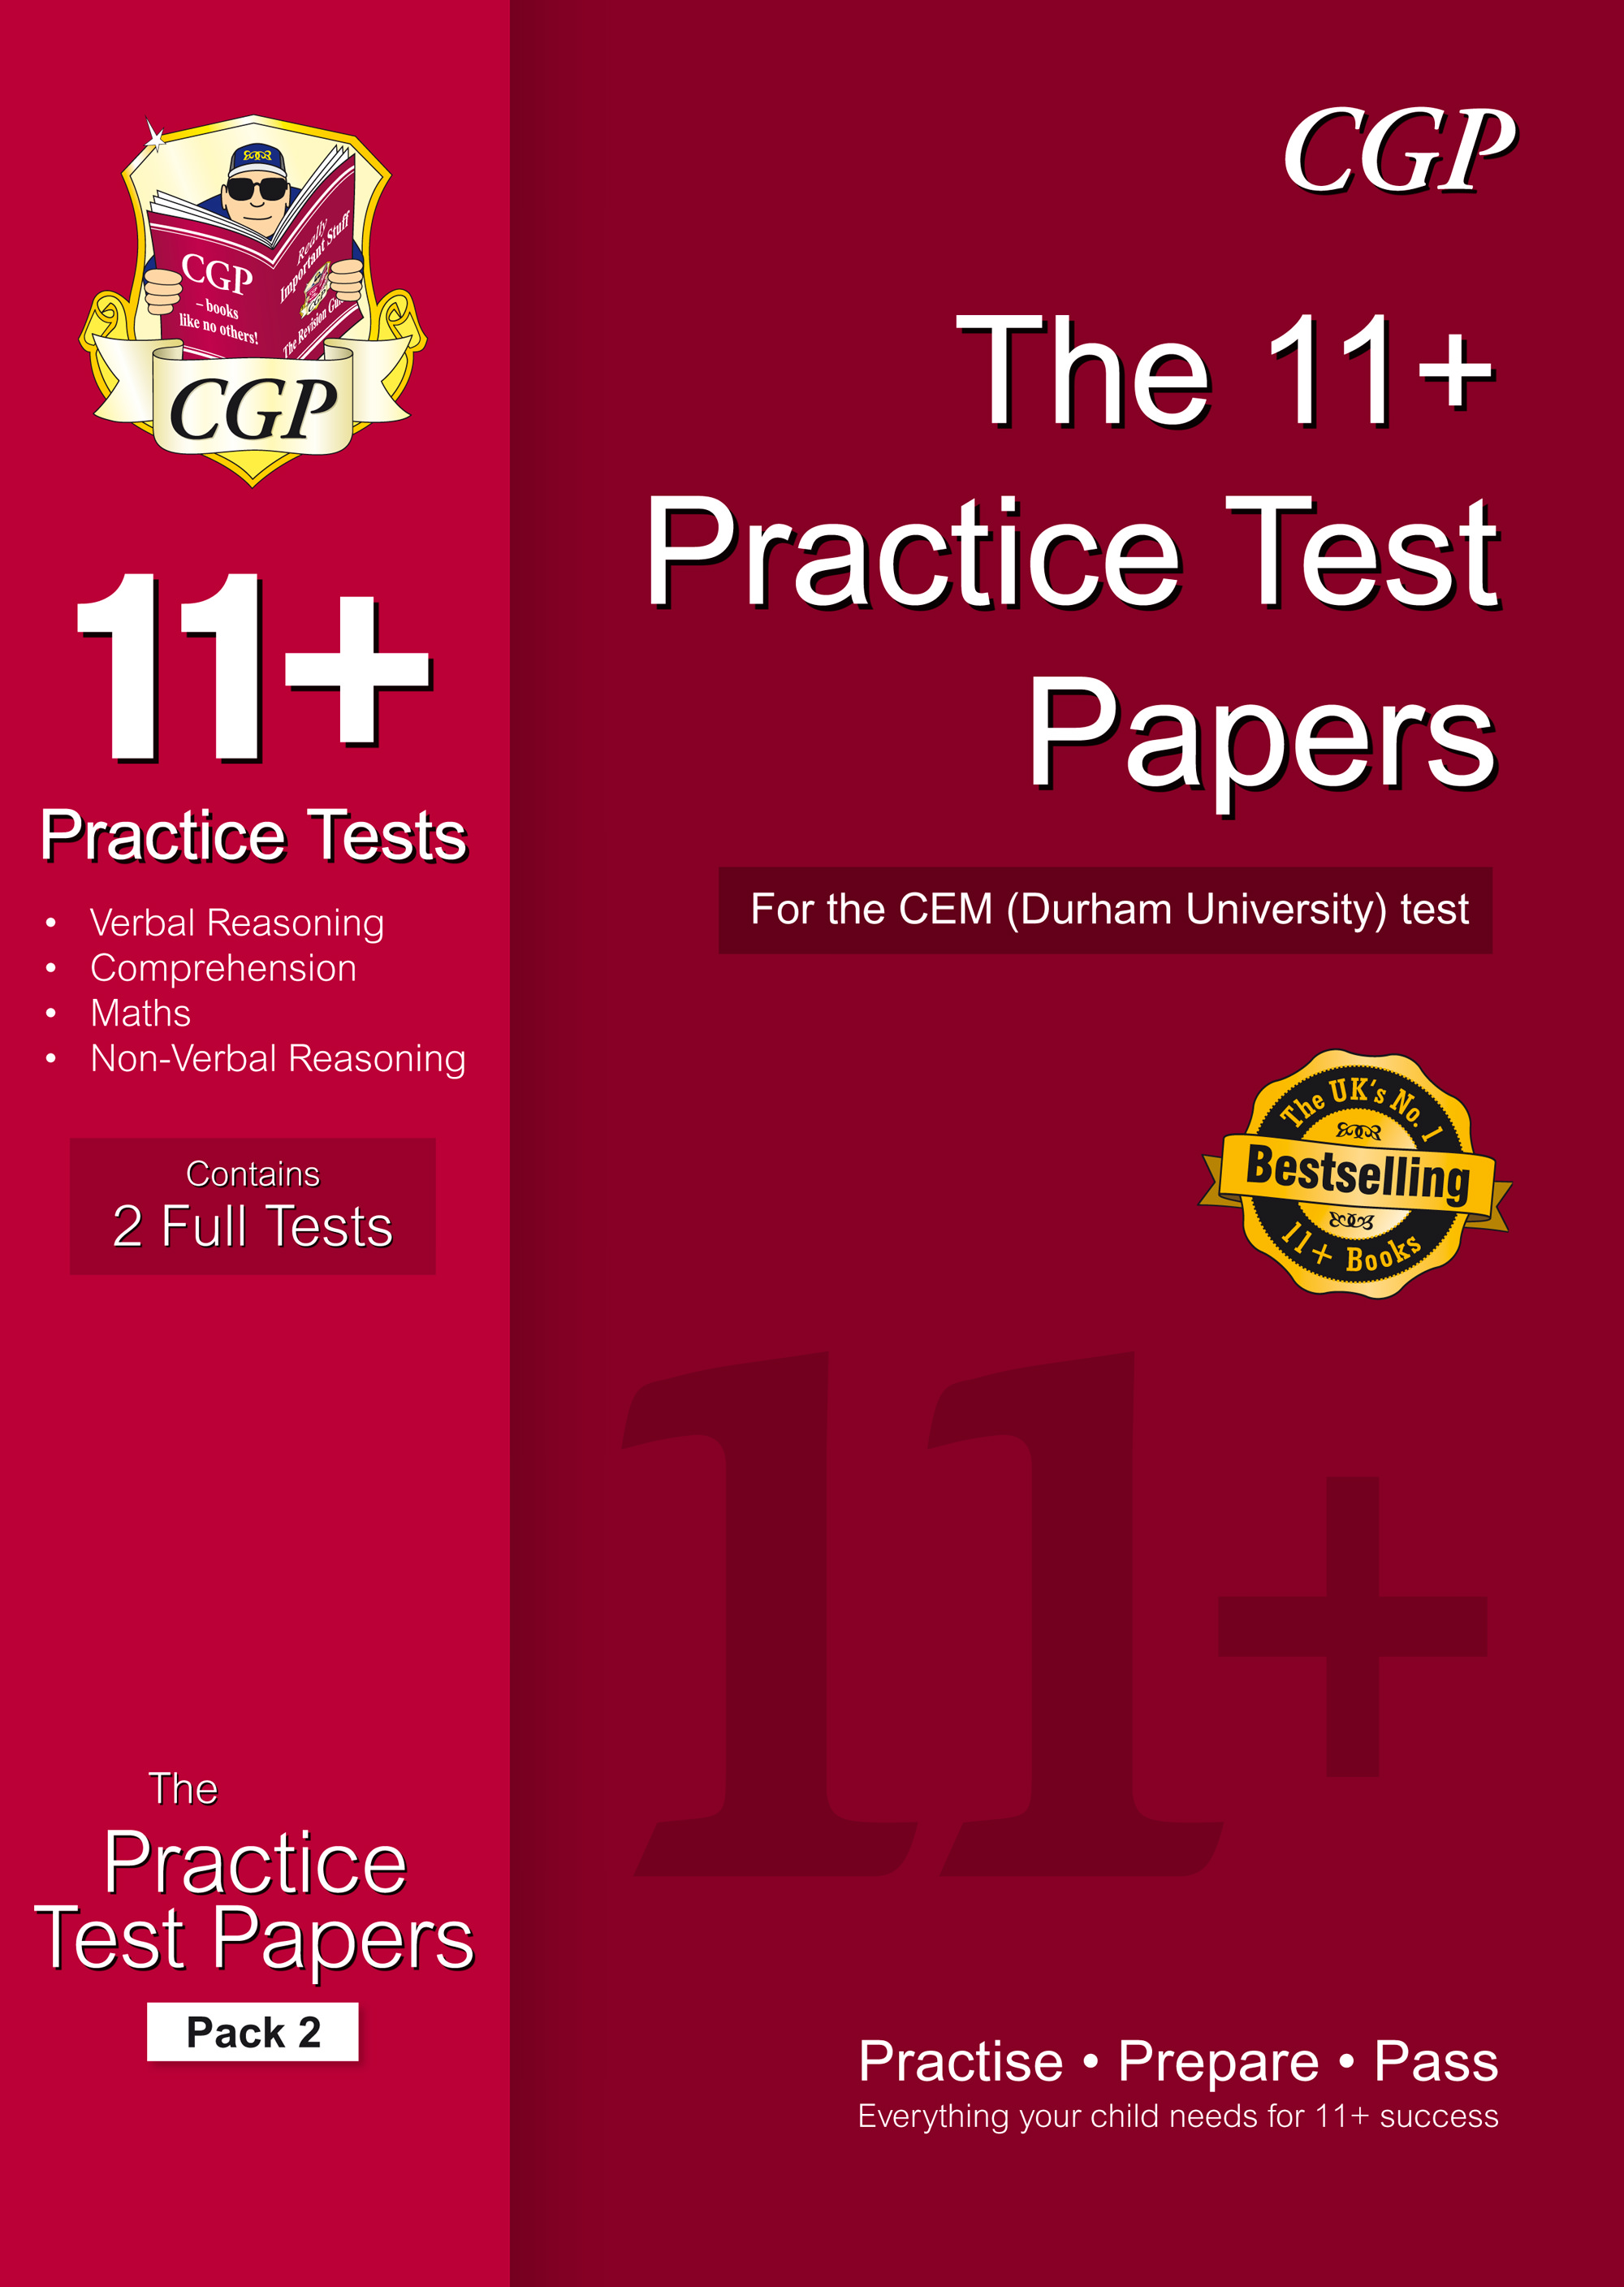 ELP2DE1 - 11+ Practice Papers for the CEM Test - Pack 2